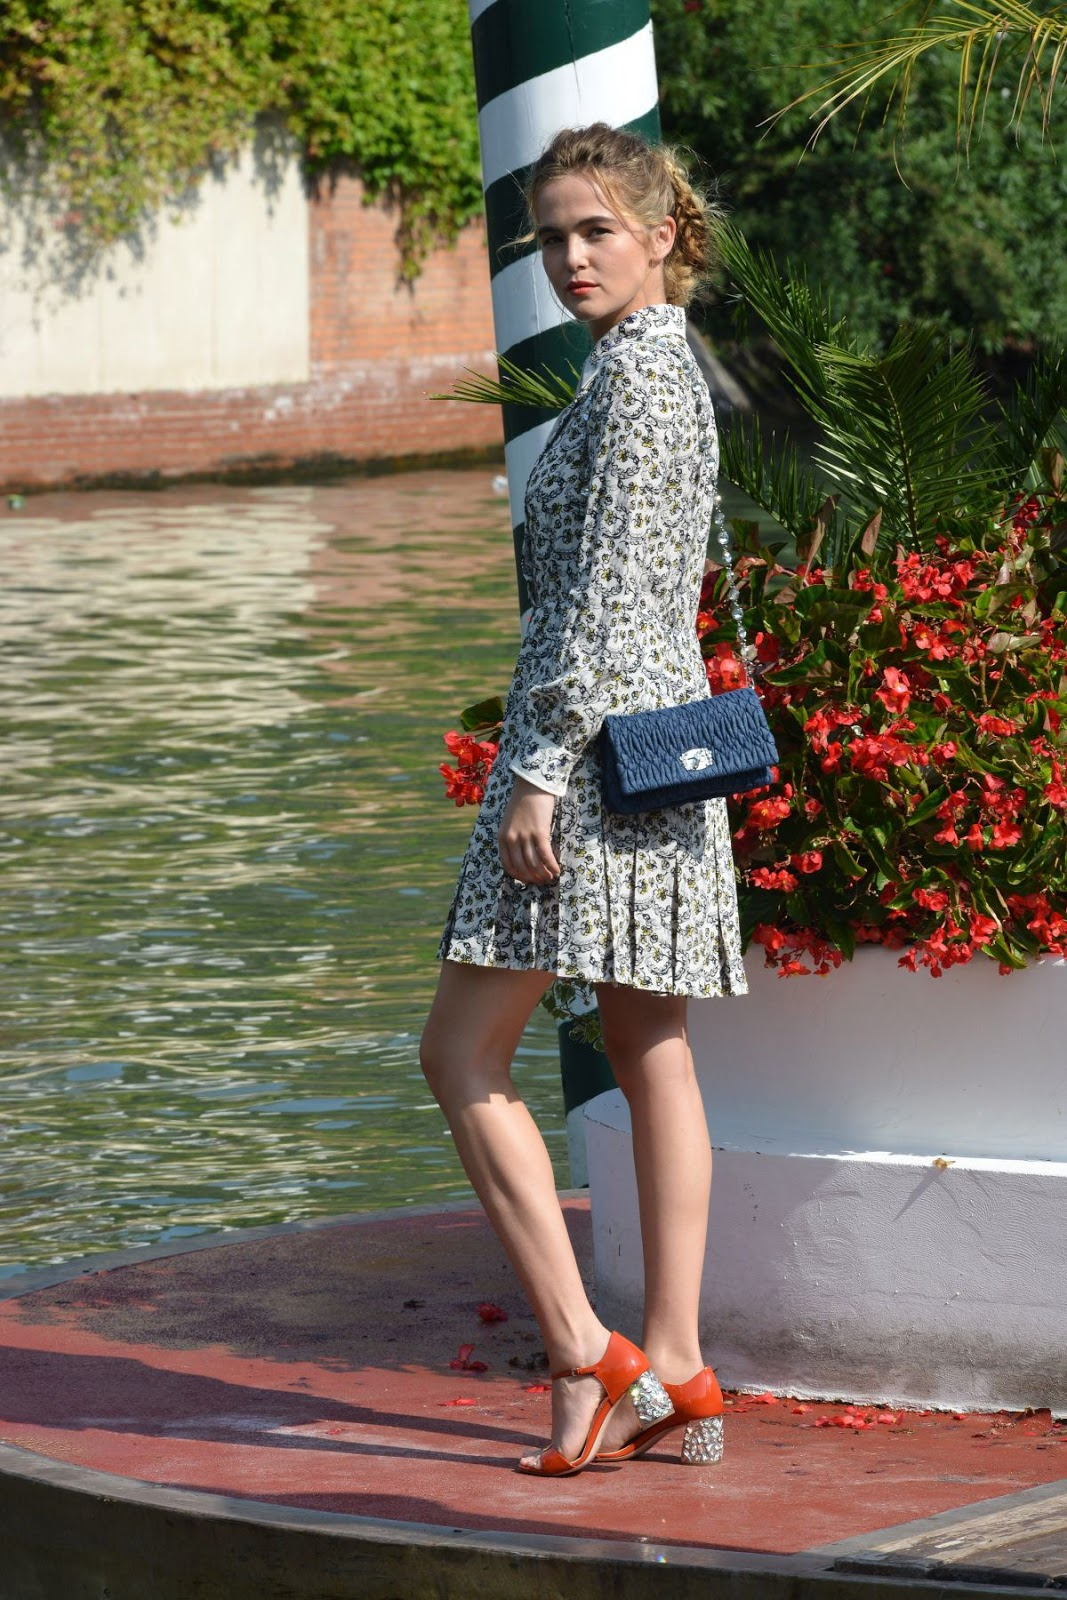 Zoey Deutch at 73rd Venice Film Festival, Italy